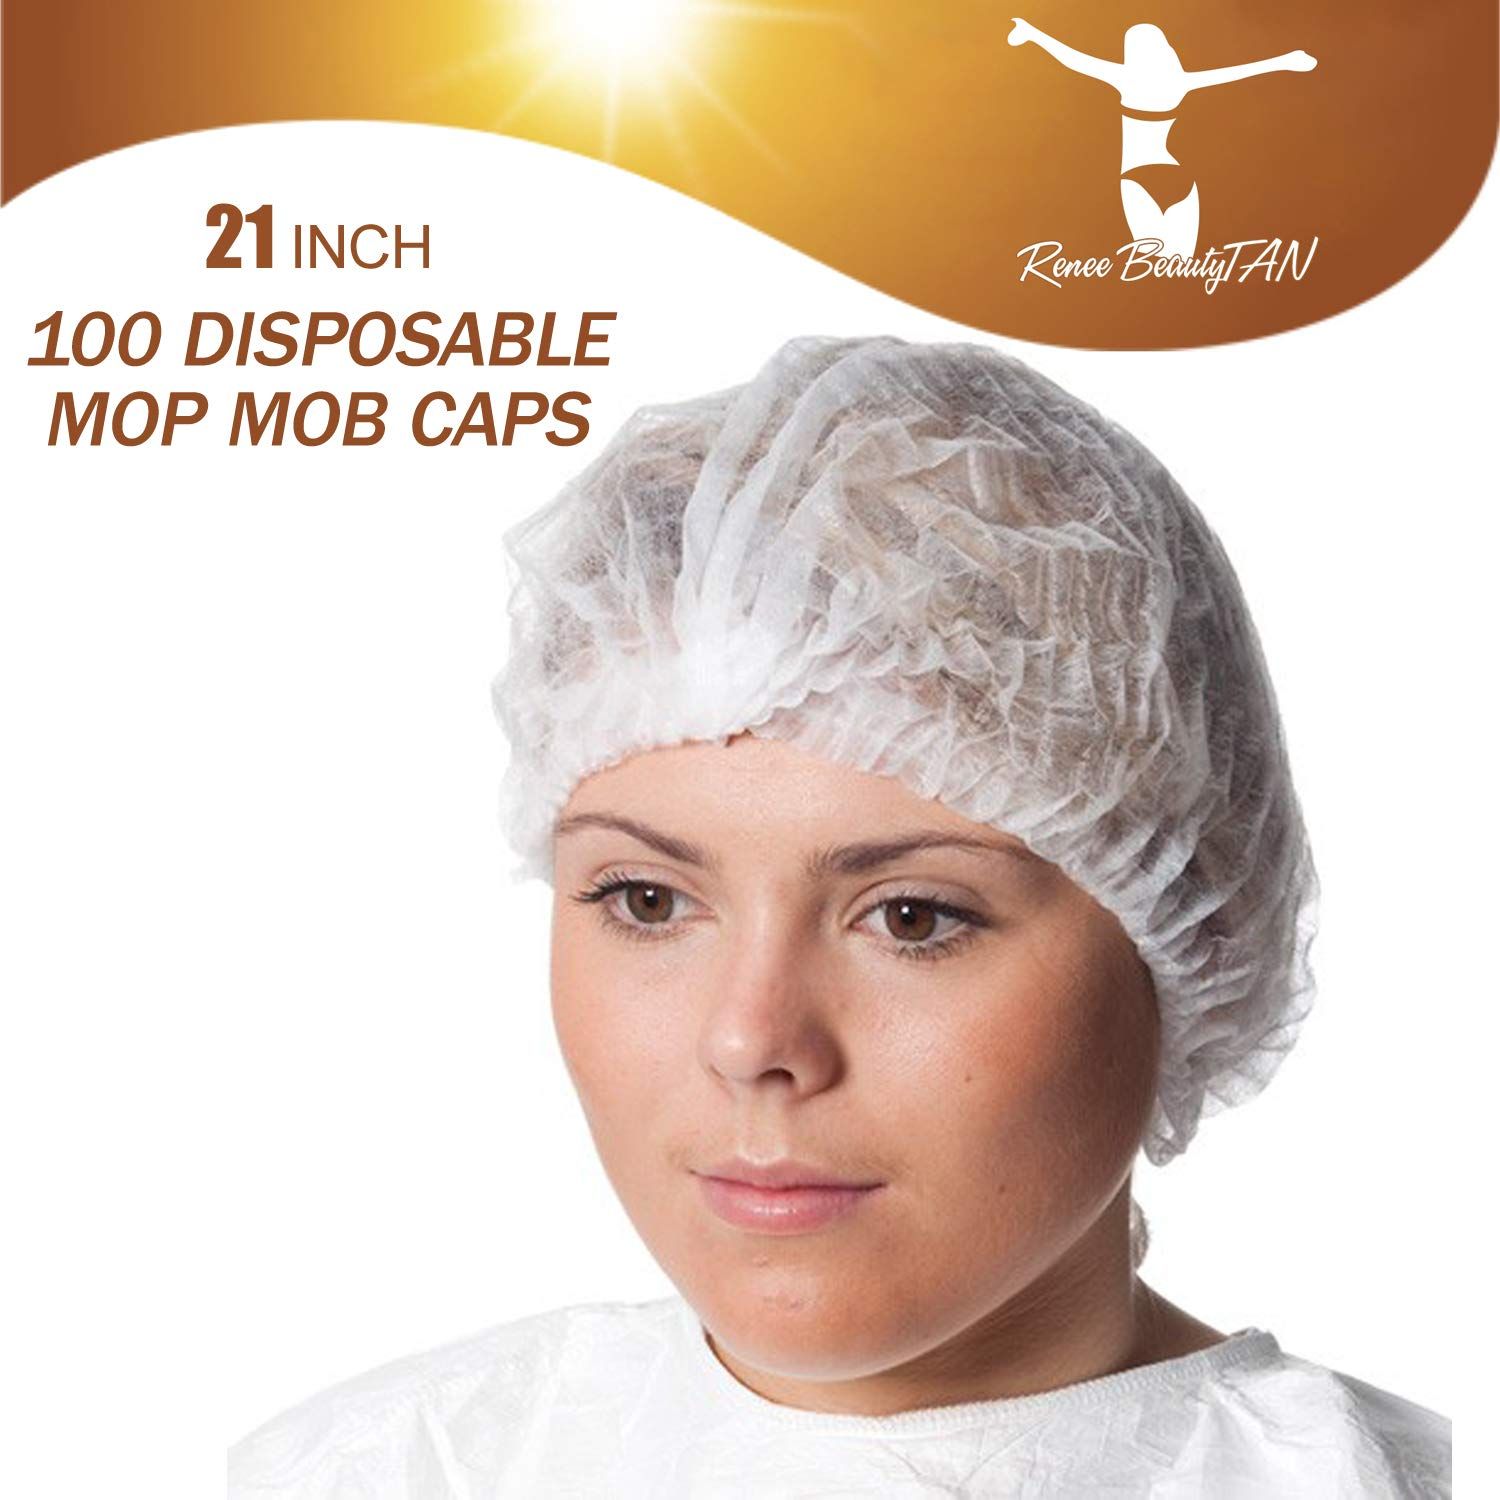 100 Disposable Mop Mob Bouffant Caps 21inch Clipped Hair Head Cover Net for Salon or Spray Tan